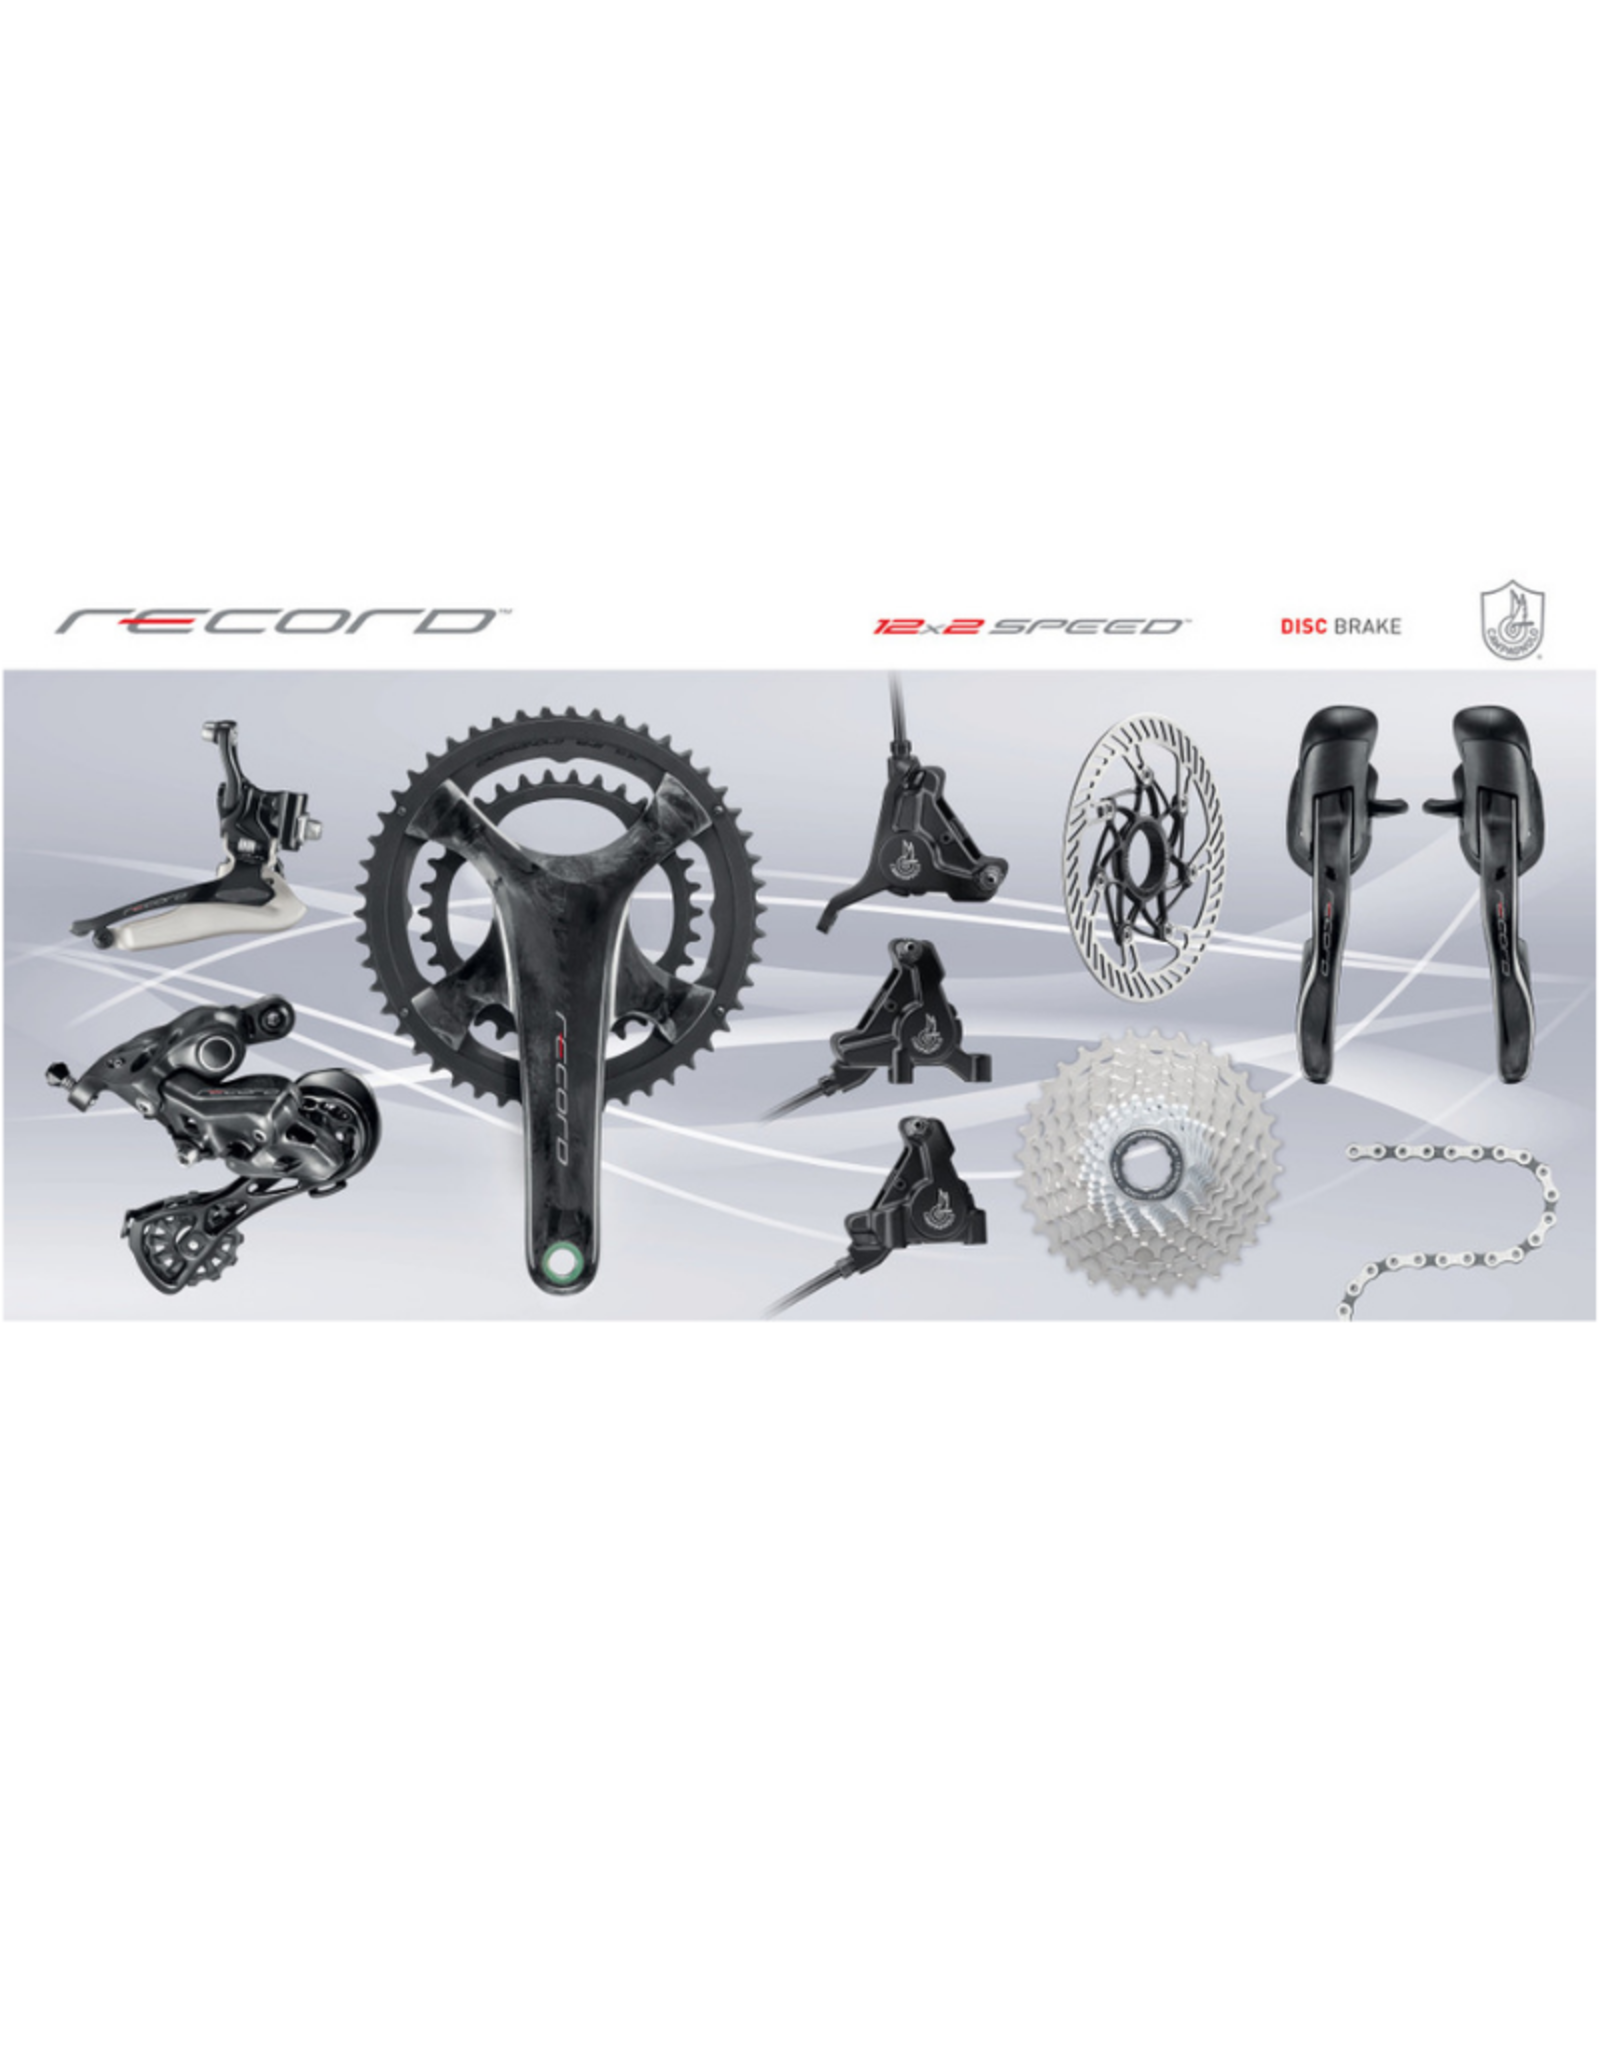 Campagnolo Record 12spd  Mechanical/Hydro Groupset